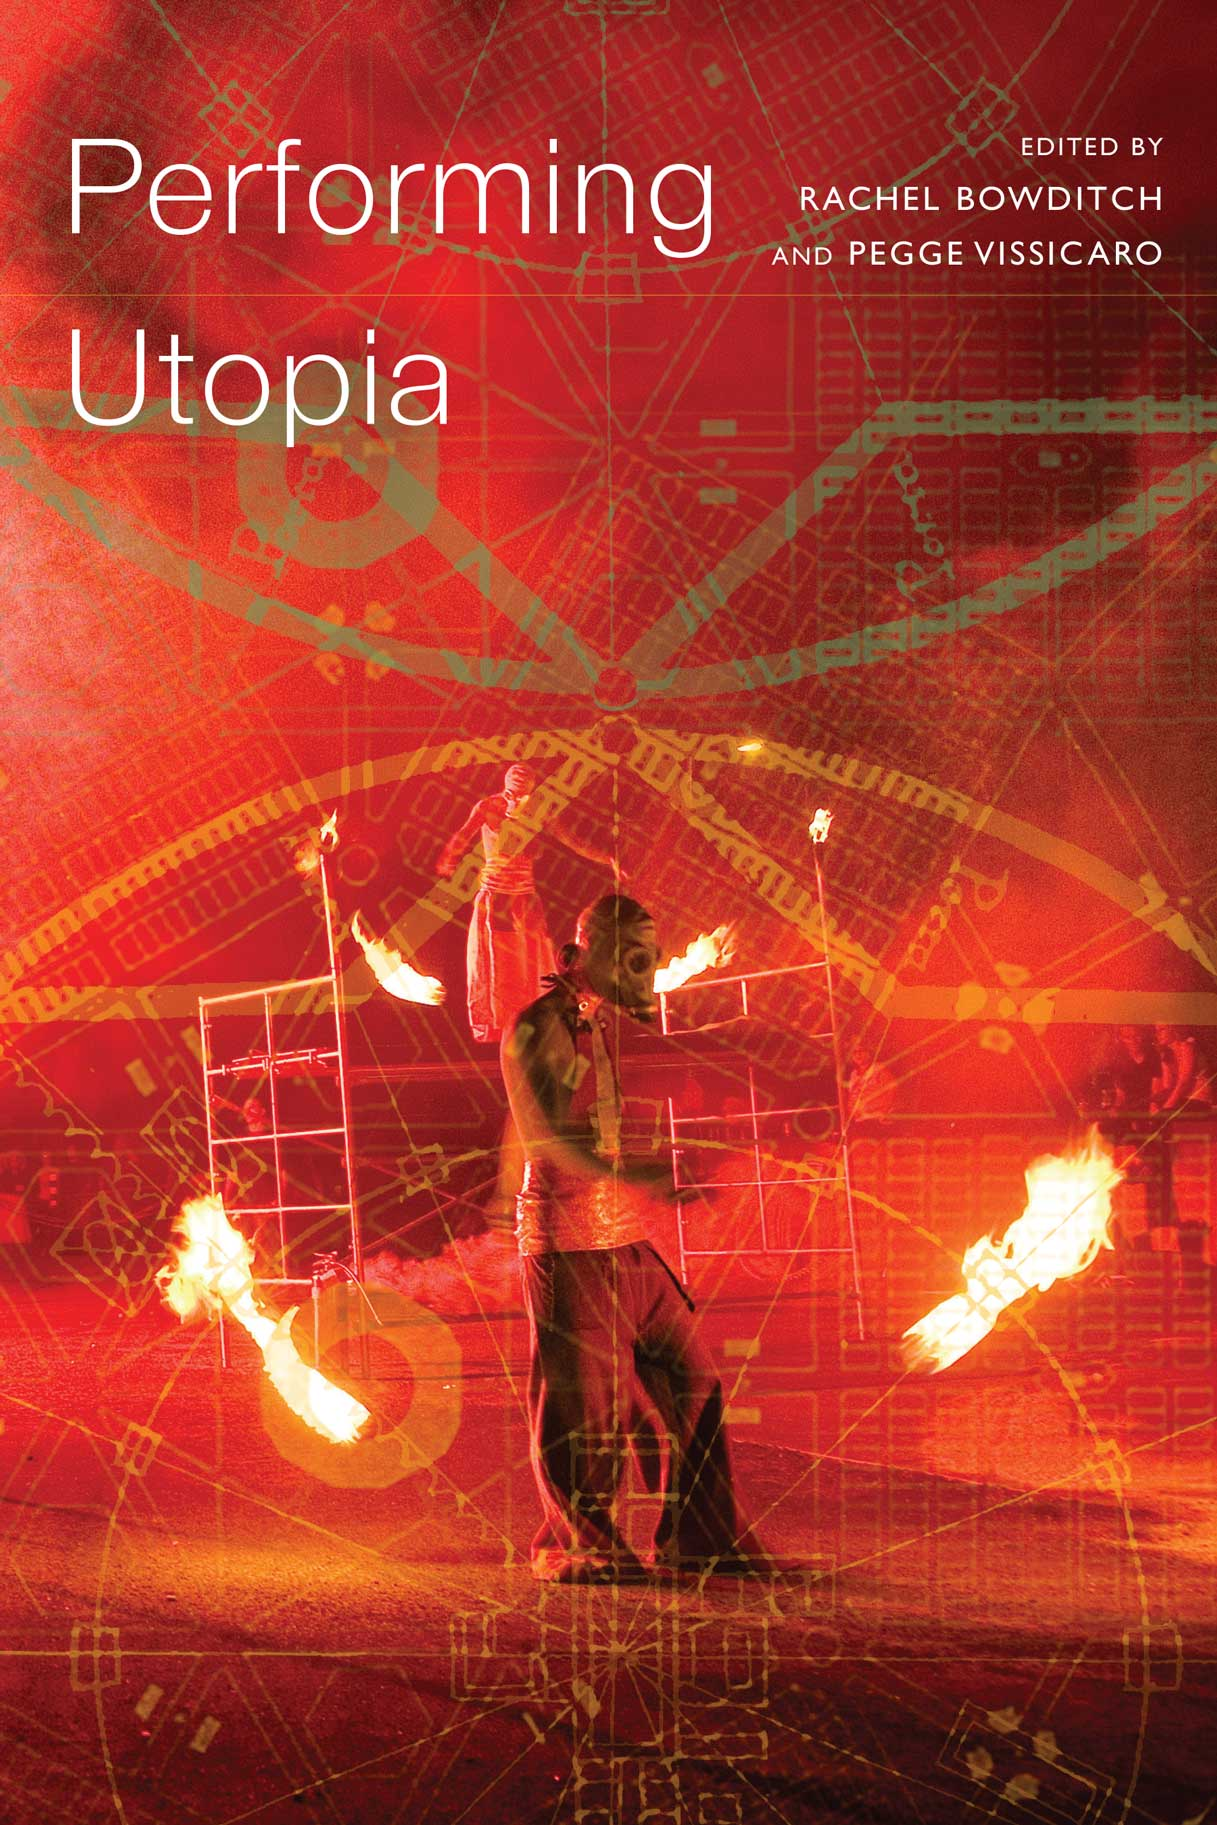 Performing Utopia by Rachel Bowditch and Pegge Vissicaro | Seagull Books